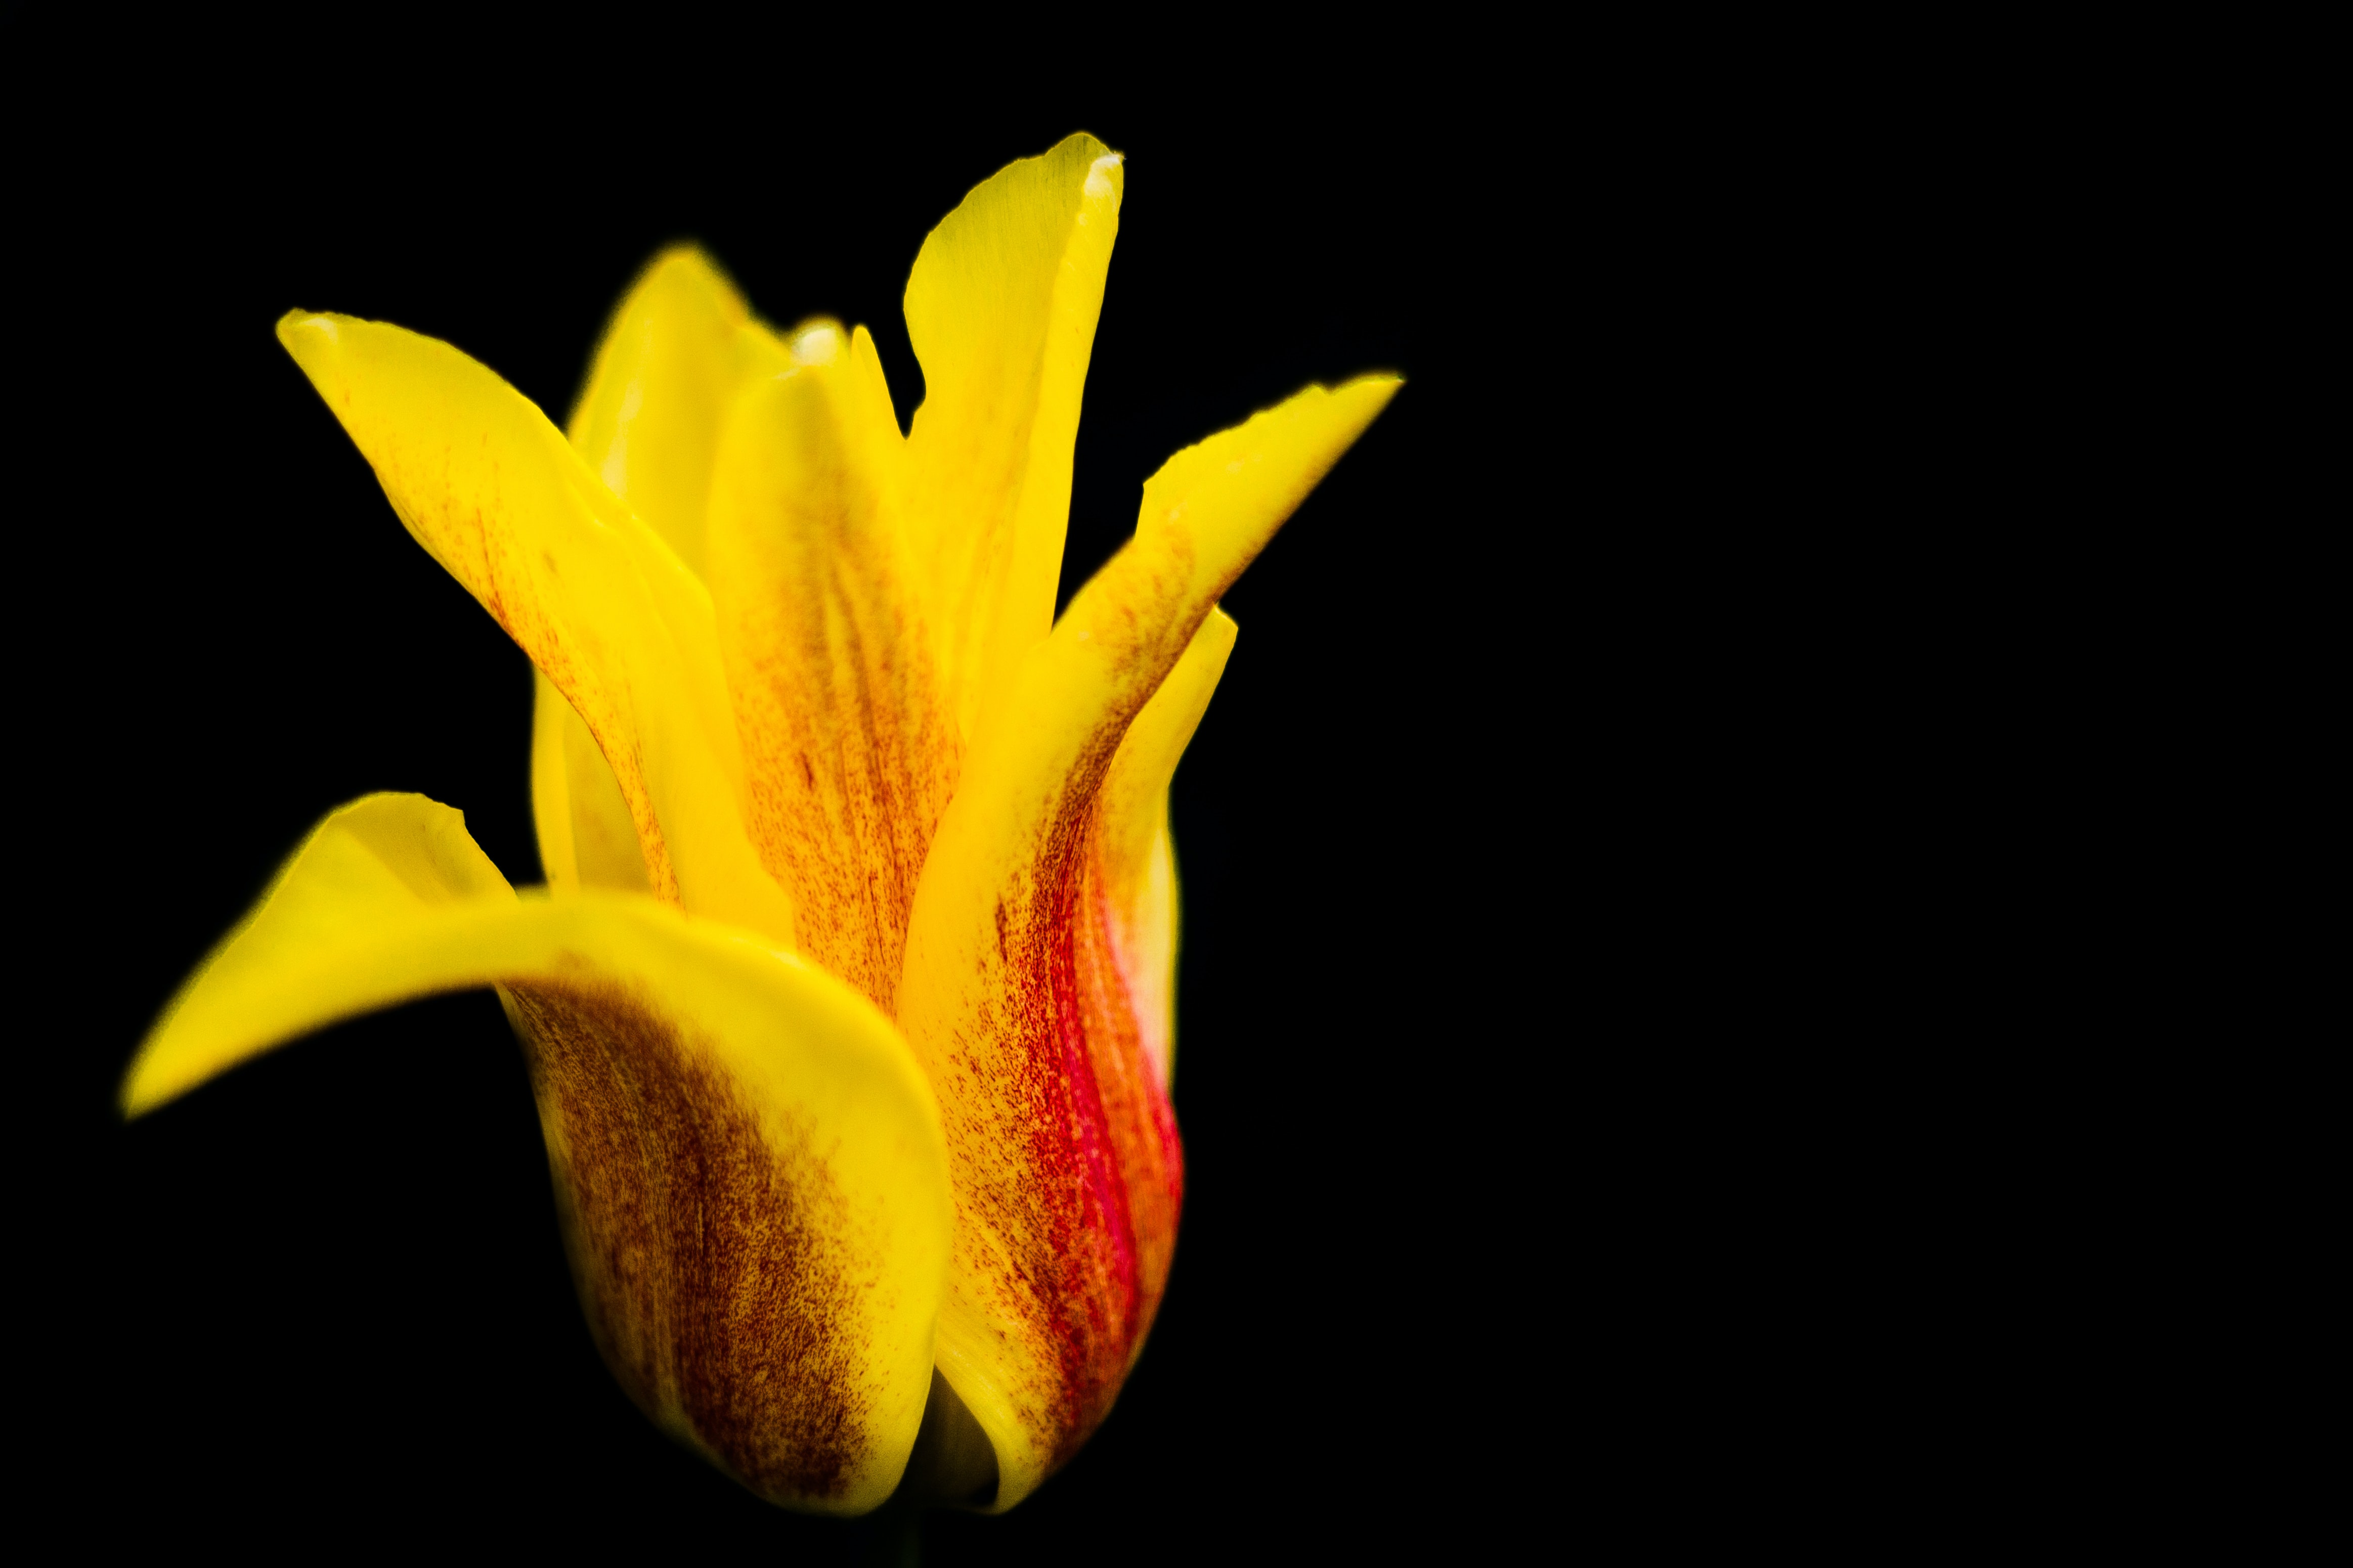 A close-up of a yellow tulip with red streaks against a black background